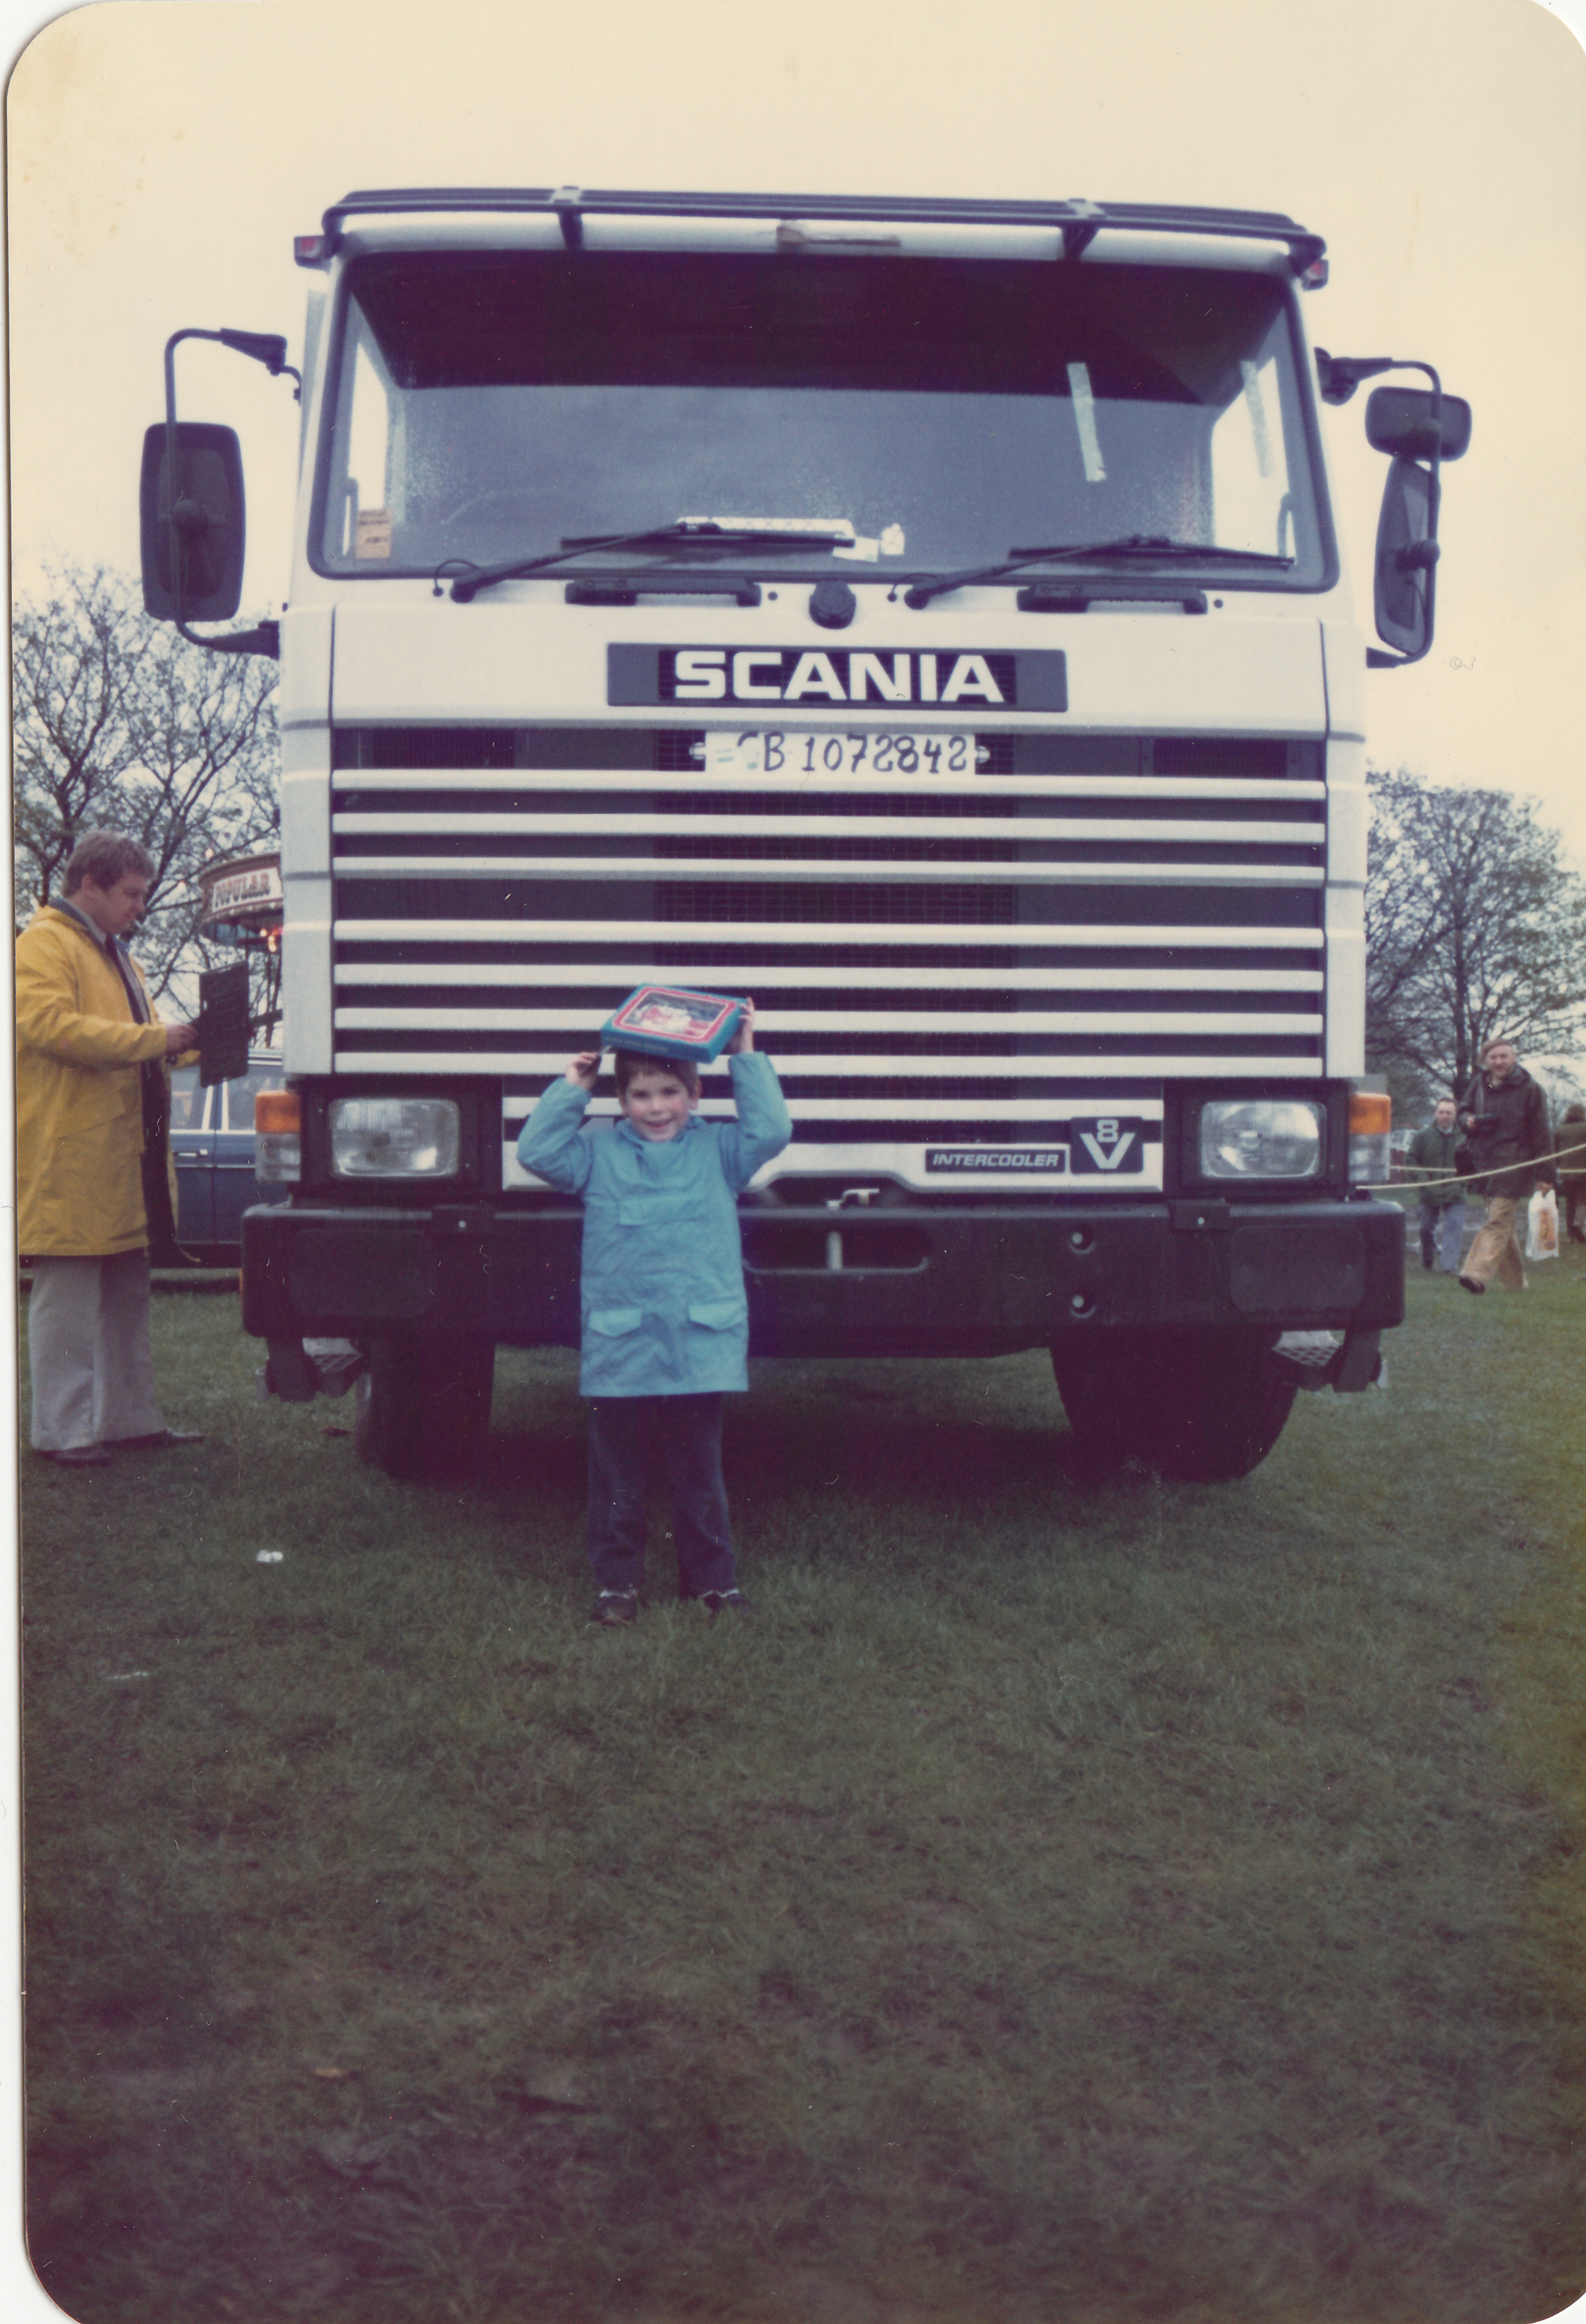 Christopher Kelly in front of a Keltruck Scania V8 tractor unit at Truckfest in 1983.